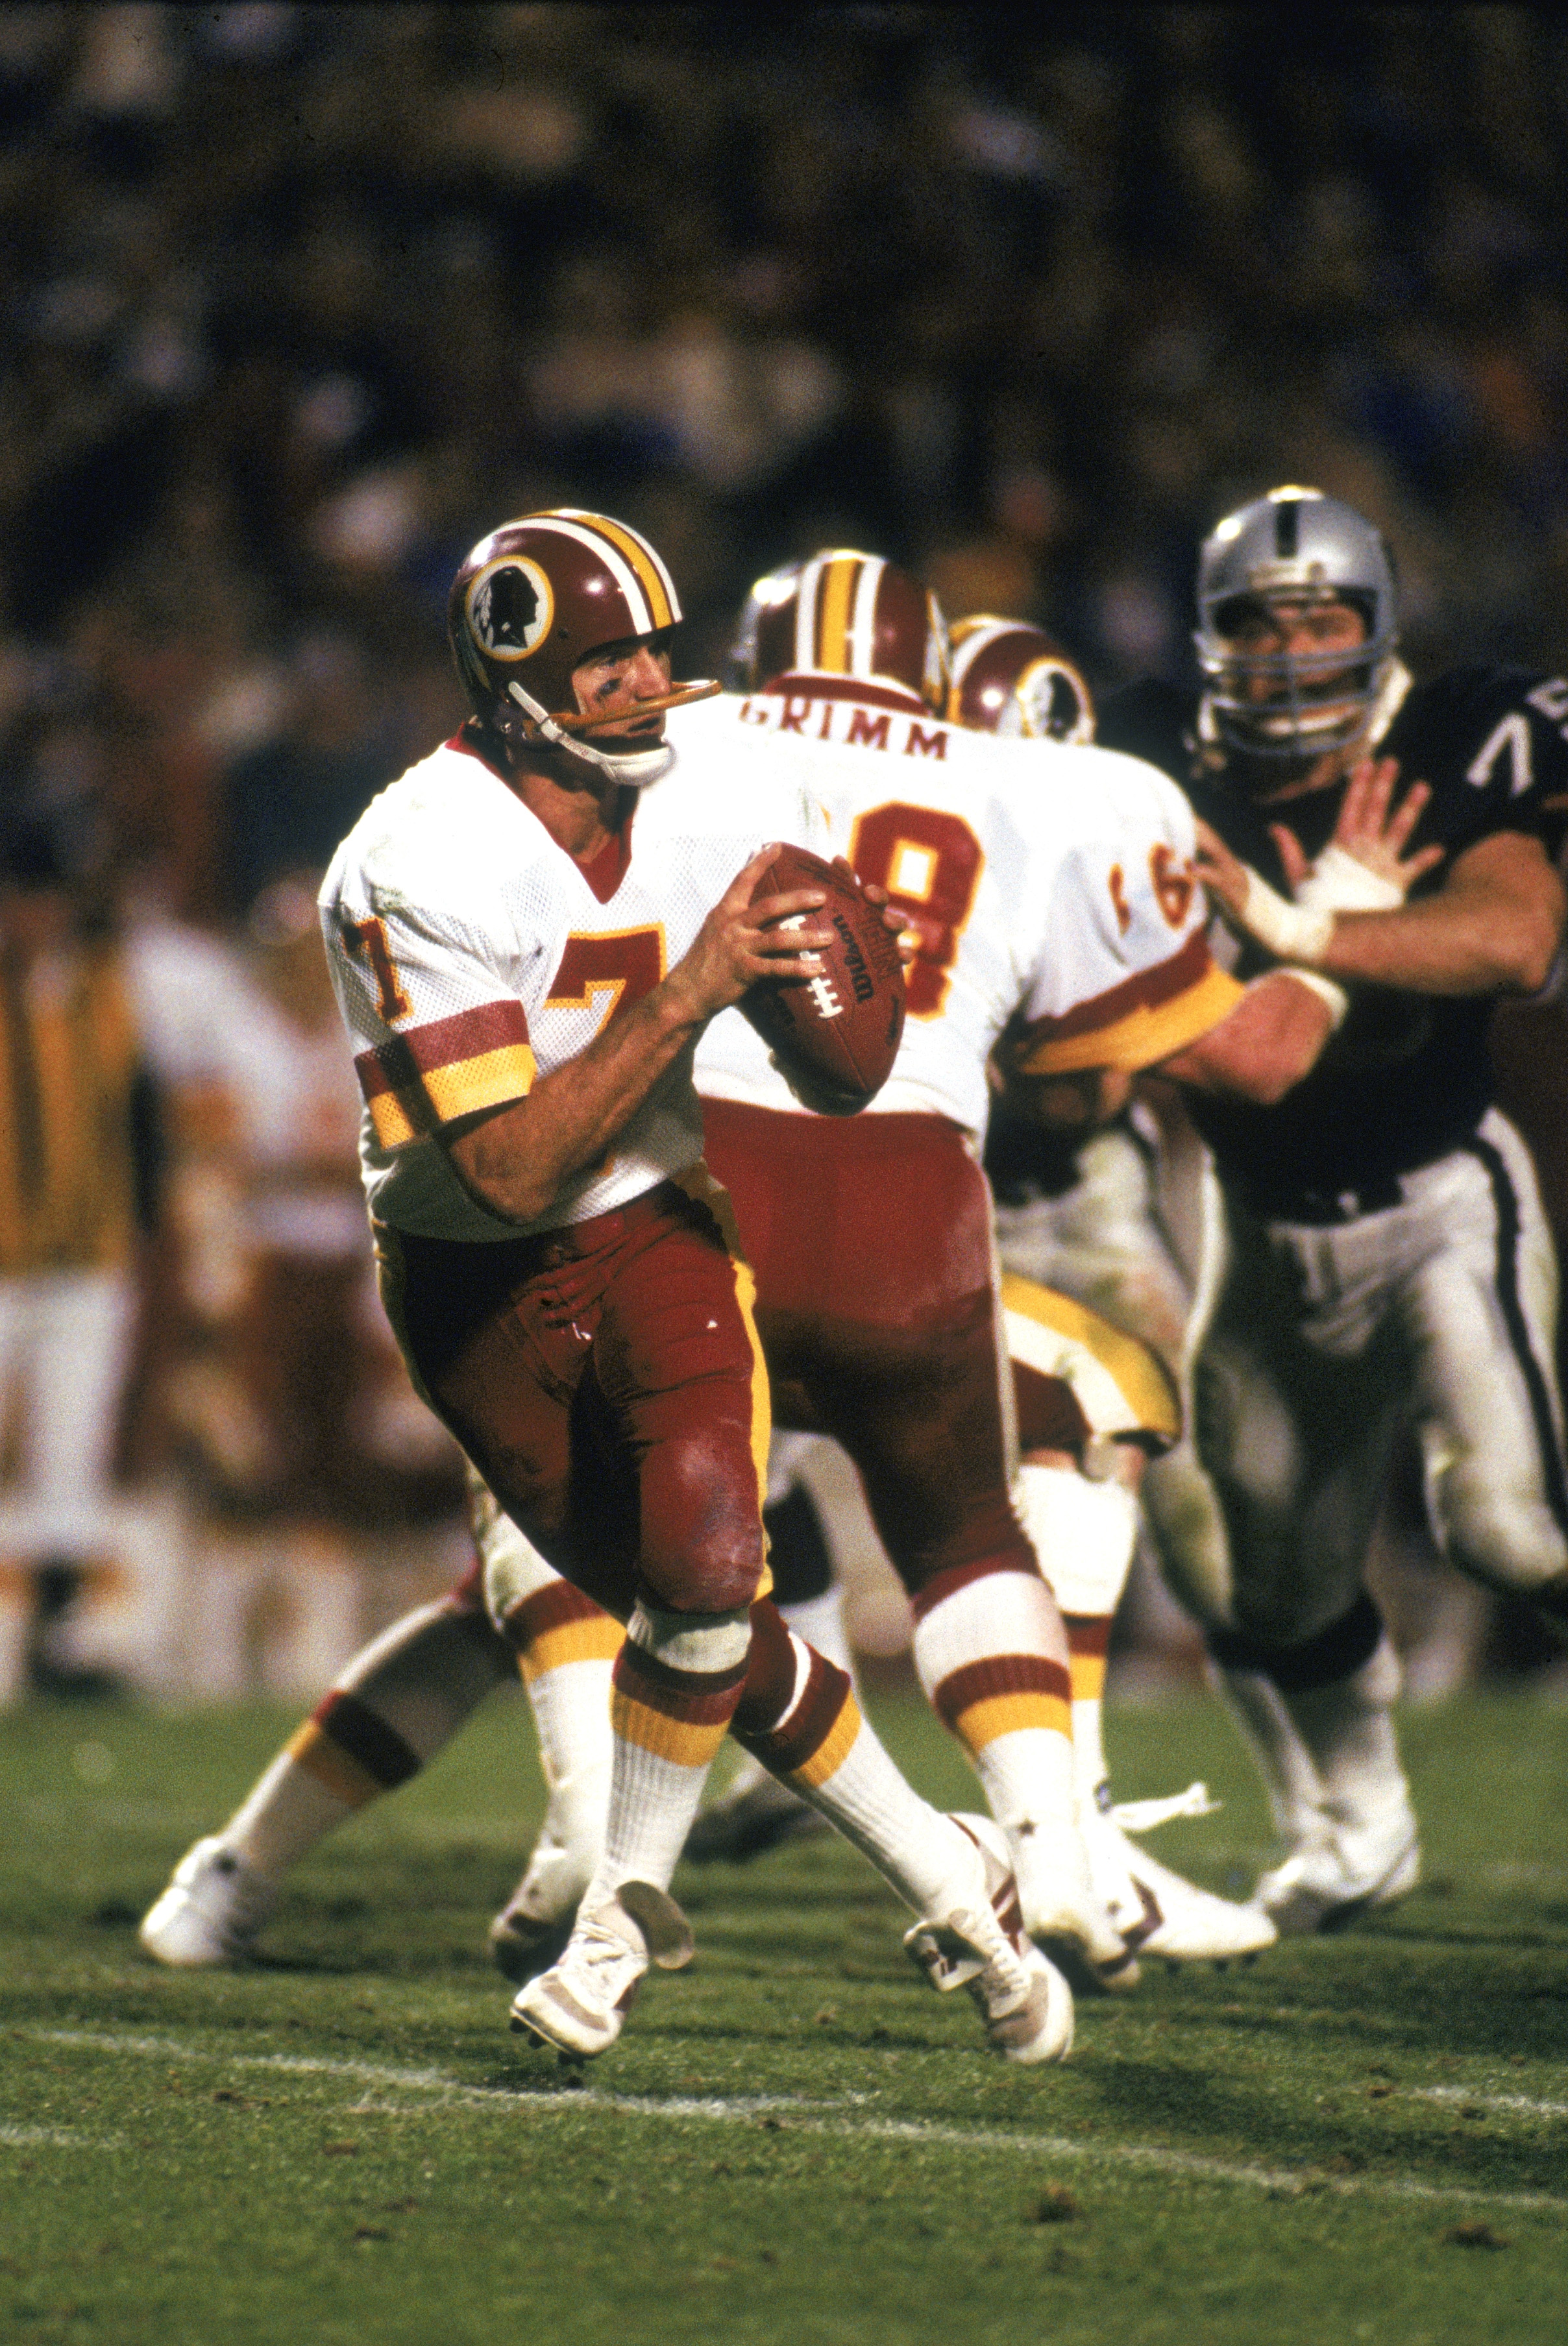 TAMPA, FL - JANUARY 22:  Joe Theismann #7 of the Washington Redskins moves back to pass during Super Bowl XVIII against the Los Angeles Raiders at Tampa Stadium on January 22, 1984 in Tampa, Florida. The Radiers defeated the Redskins 38-9. (Photo by: Gett